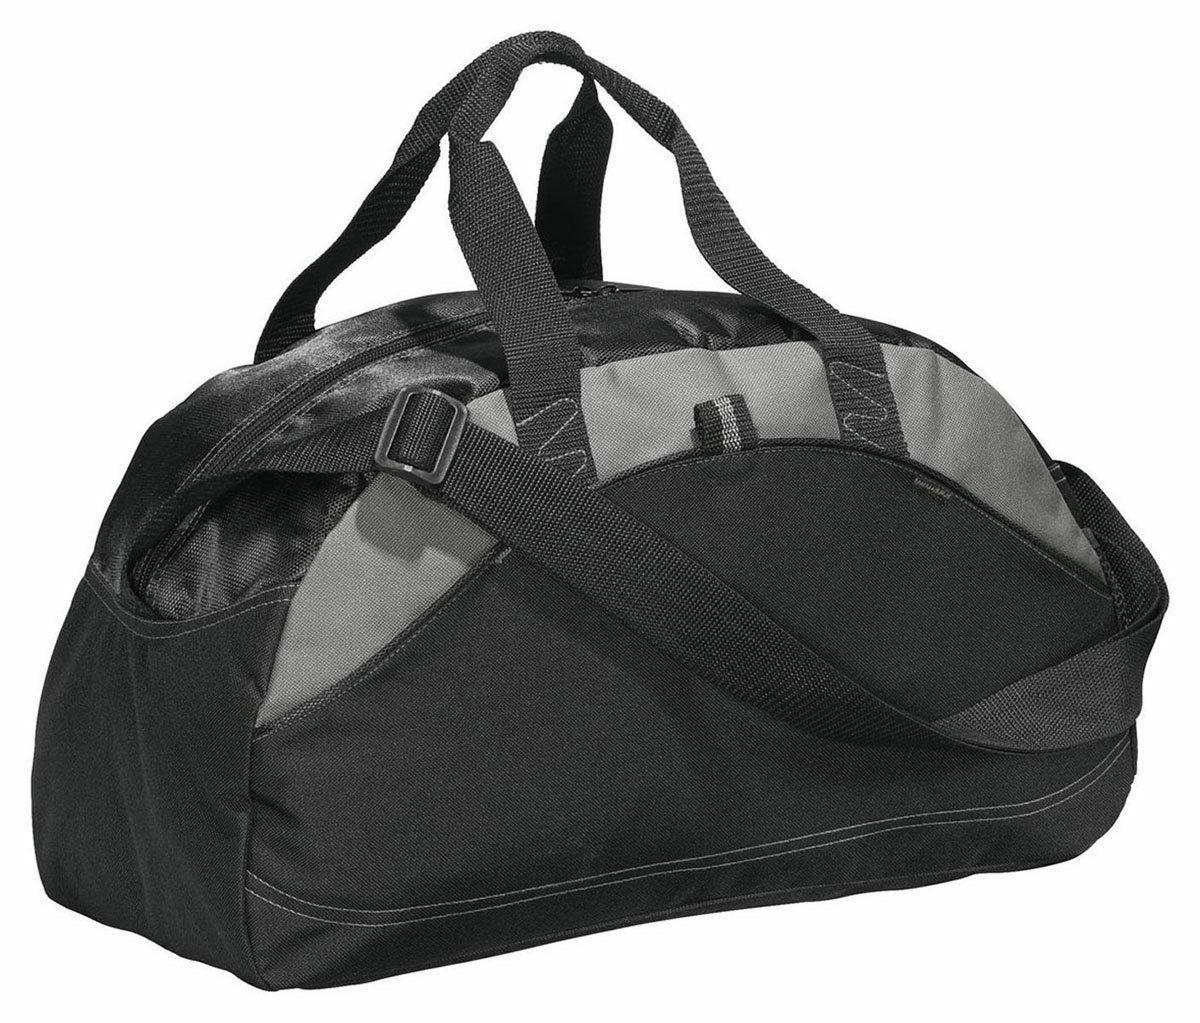 NEW Port & Company Improved Small Bag Gym Travel Carry On Bag